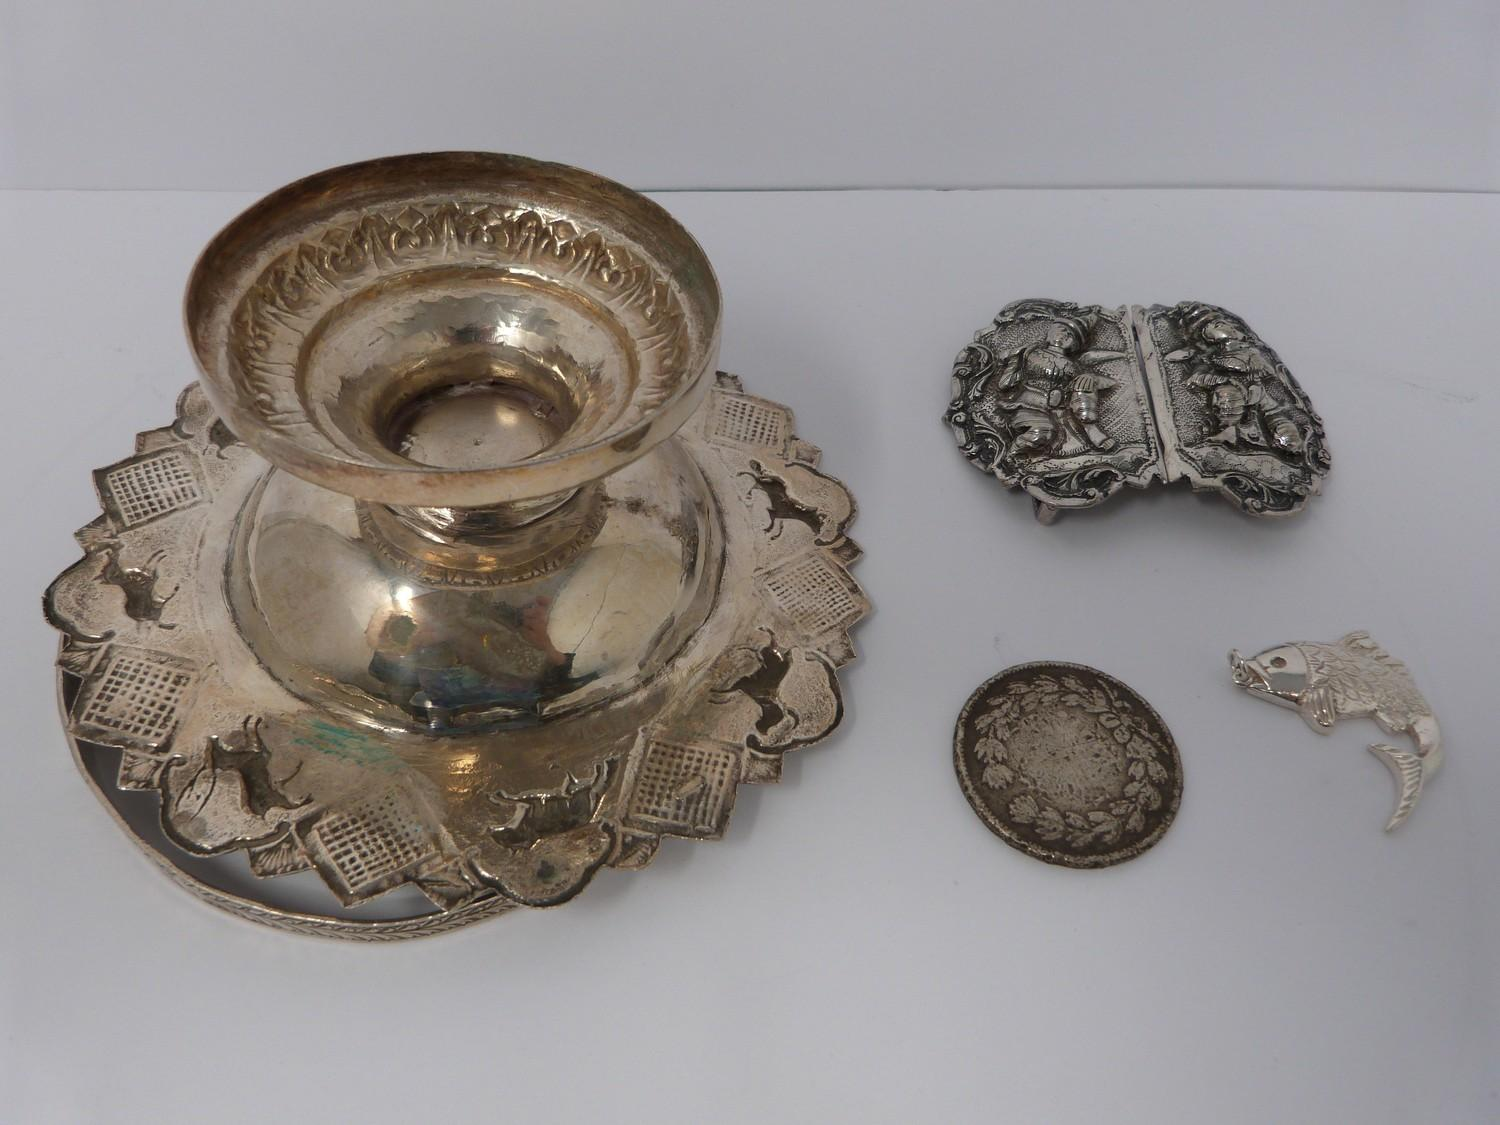 A white metal oriental handled dish, coin, silver fish pendant and white metal thai buckle, basket - Image 2 of 9